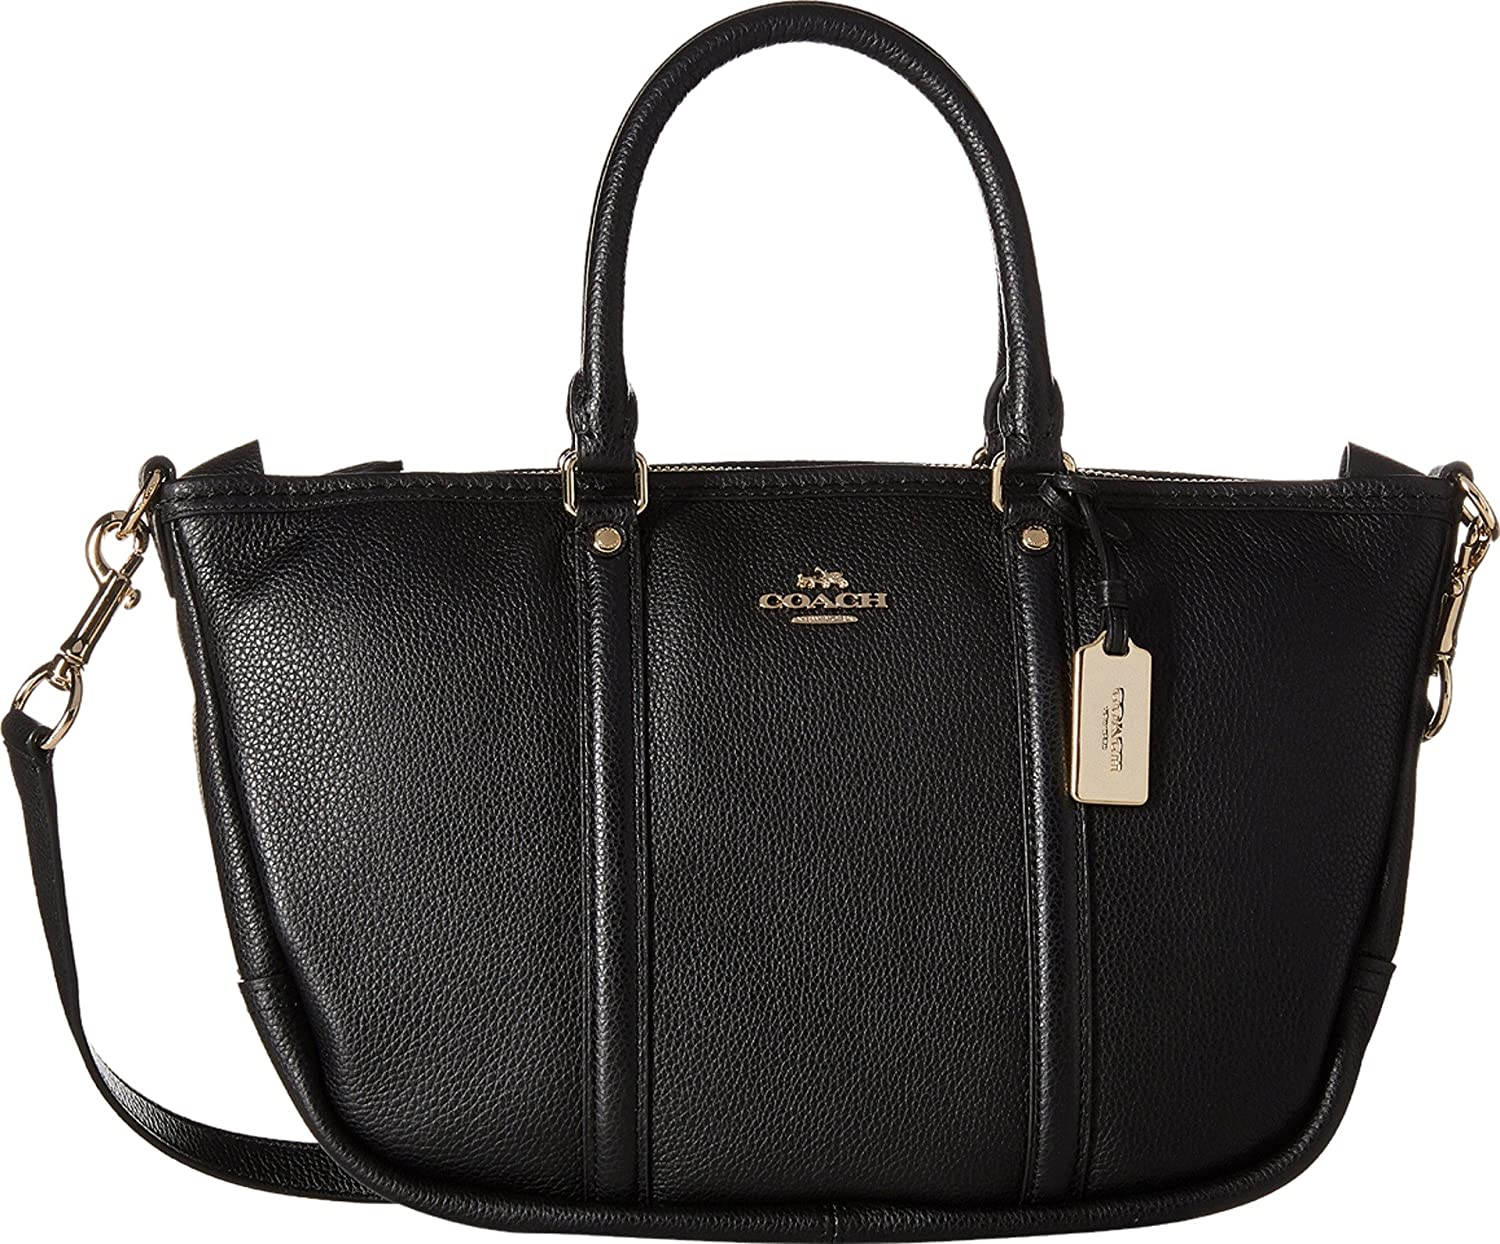 4df0593c39 Amazon.com  COACH Women s Pebbled Small Coach Central Satchel Li Black  Handbag  Shoes